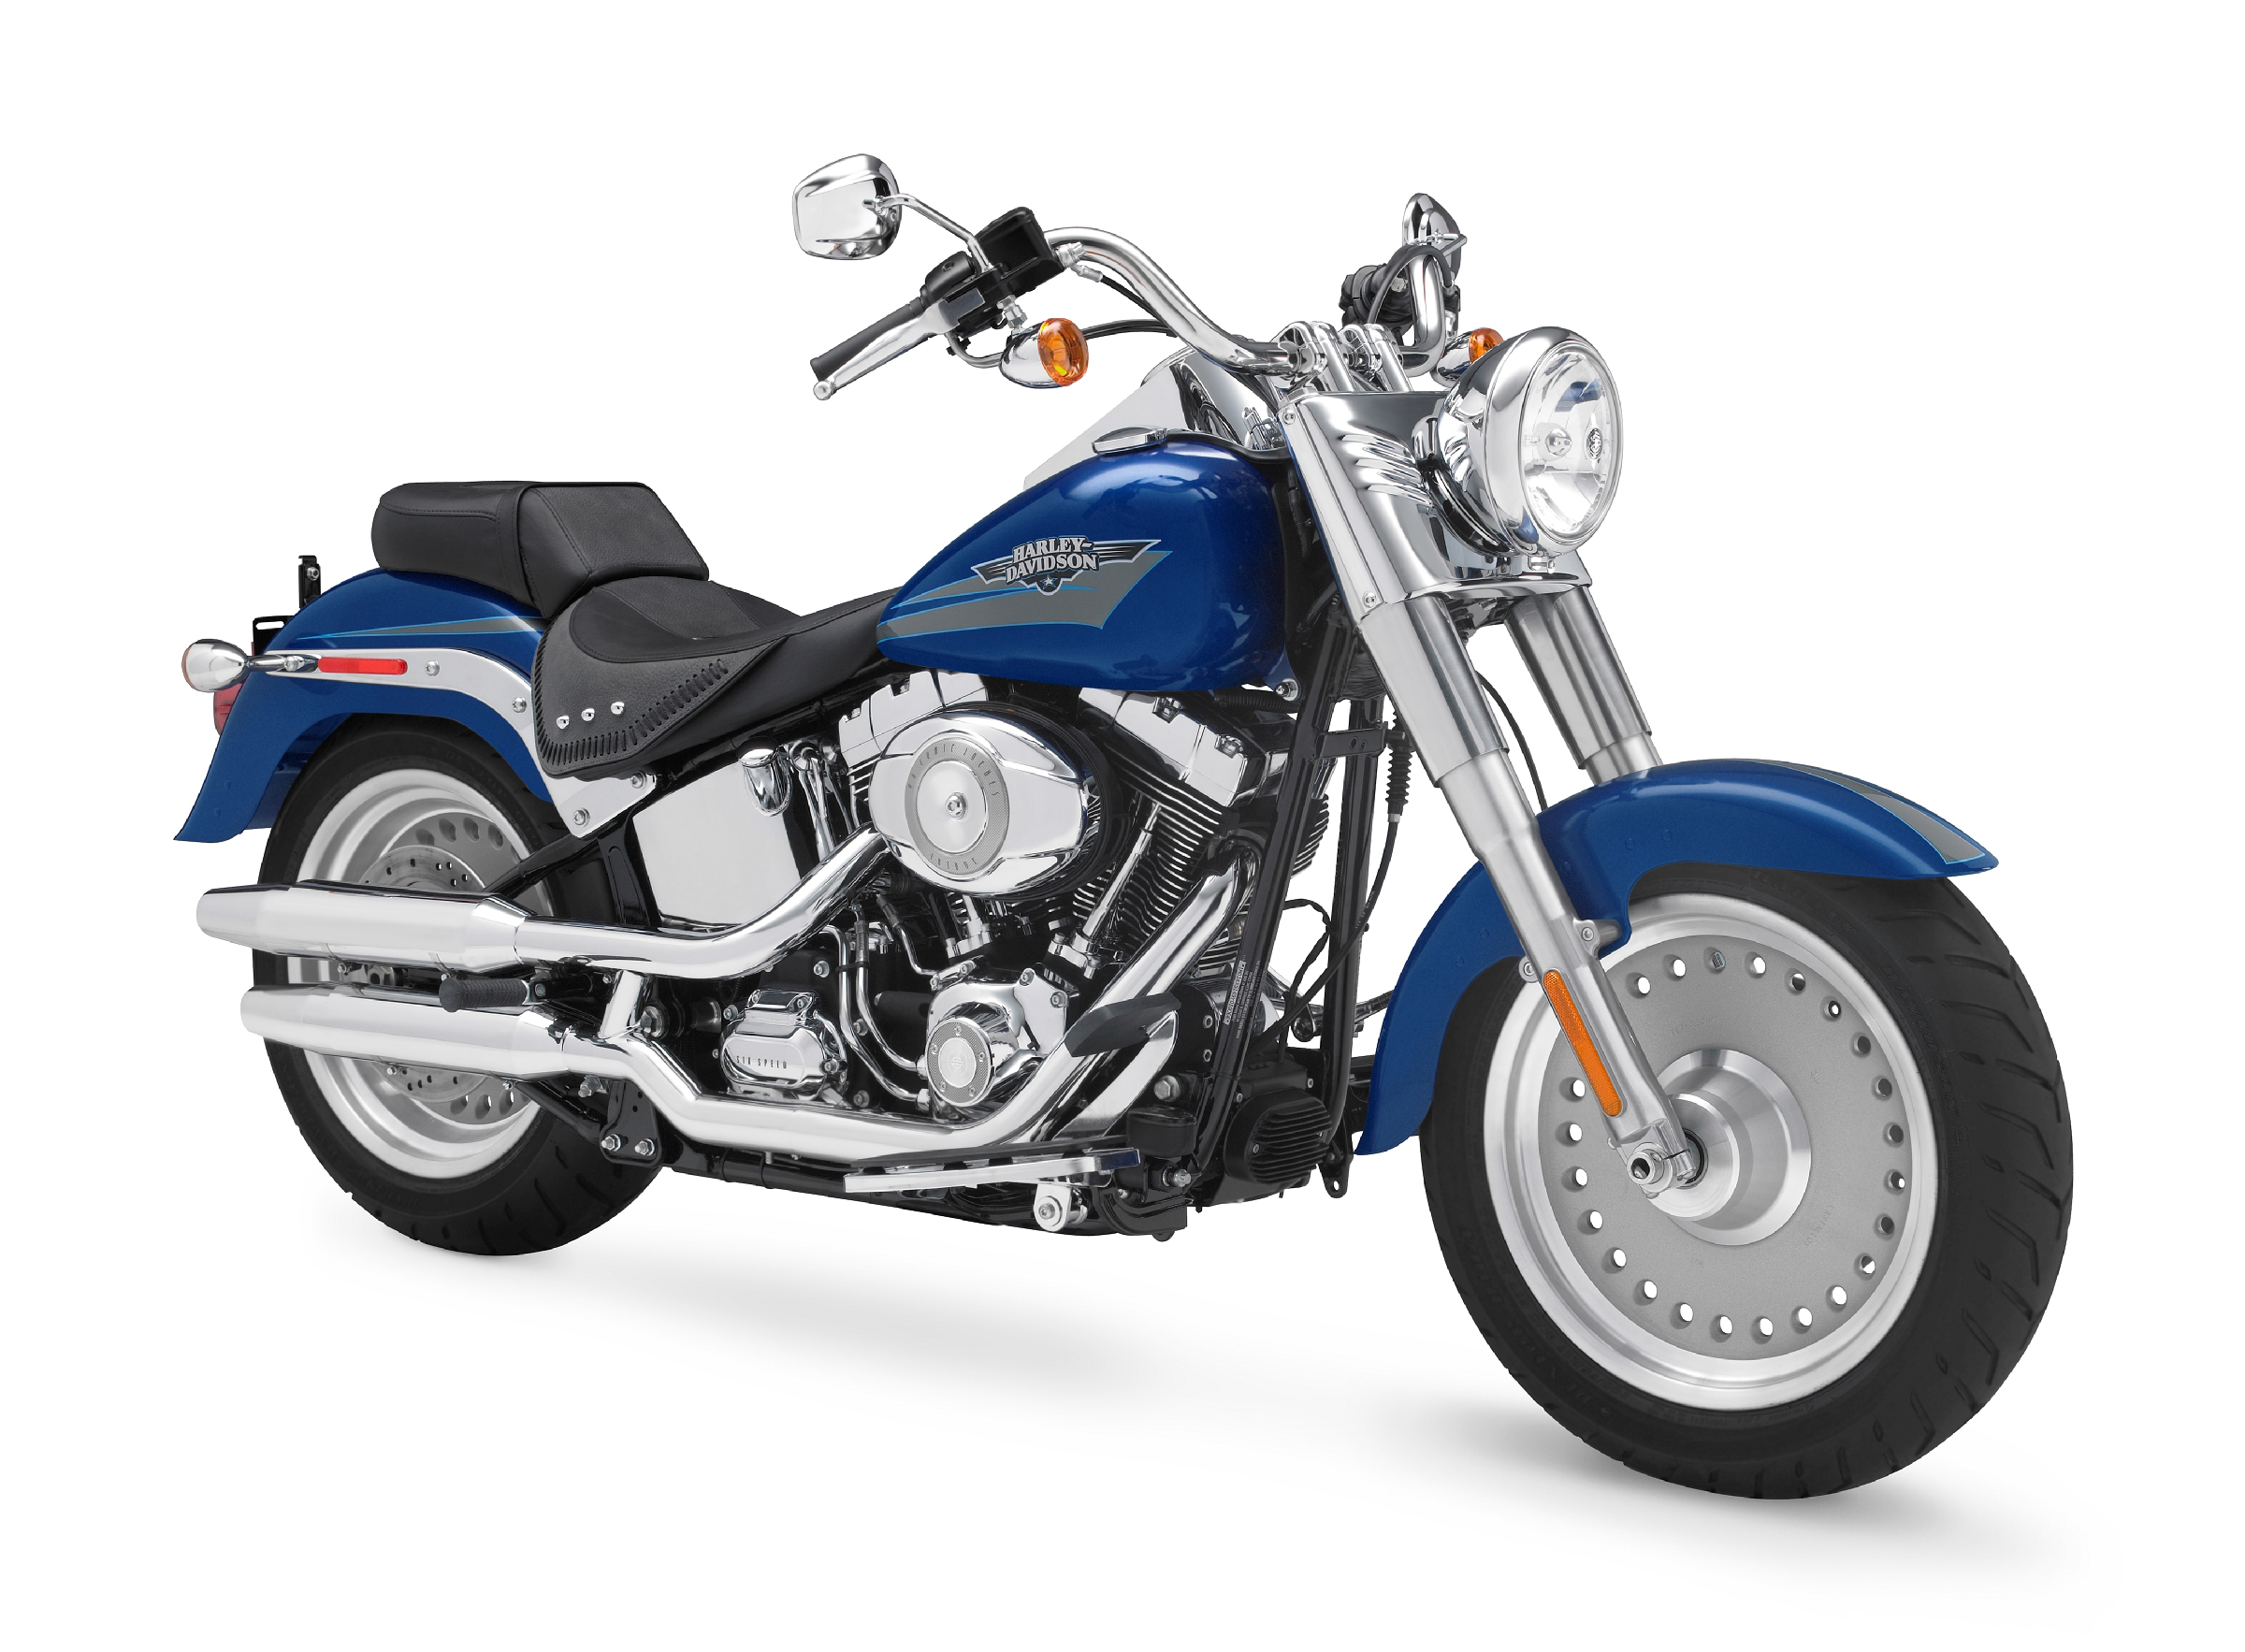 2009 Harley-Davidson FLSTF Softail Fat Boy | Top Speed. »